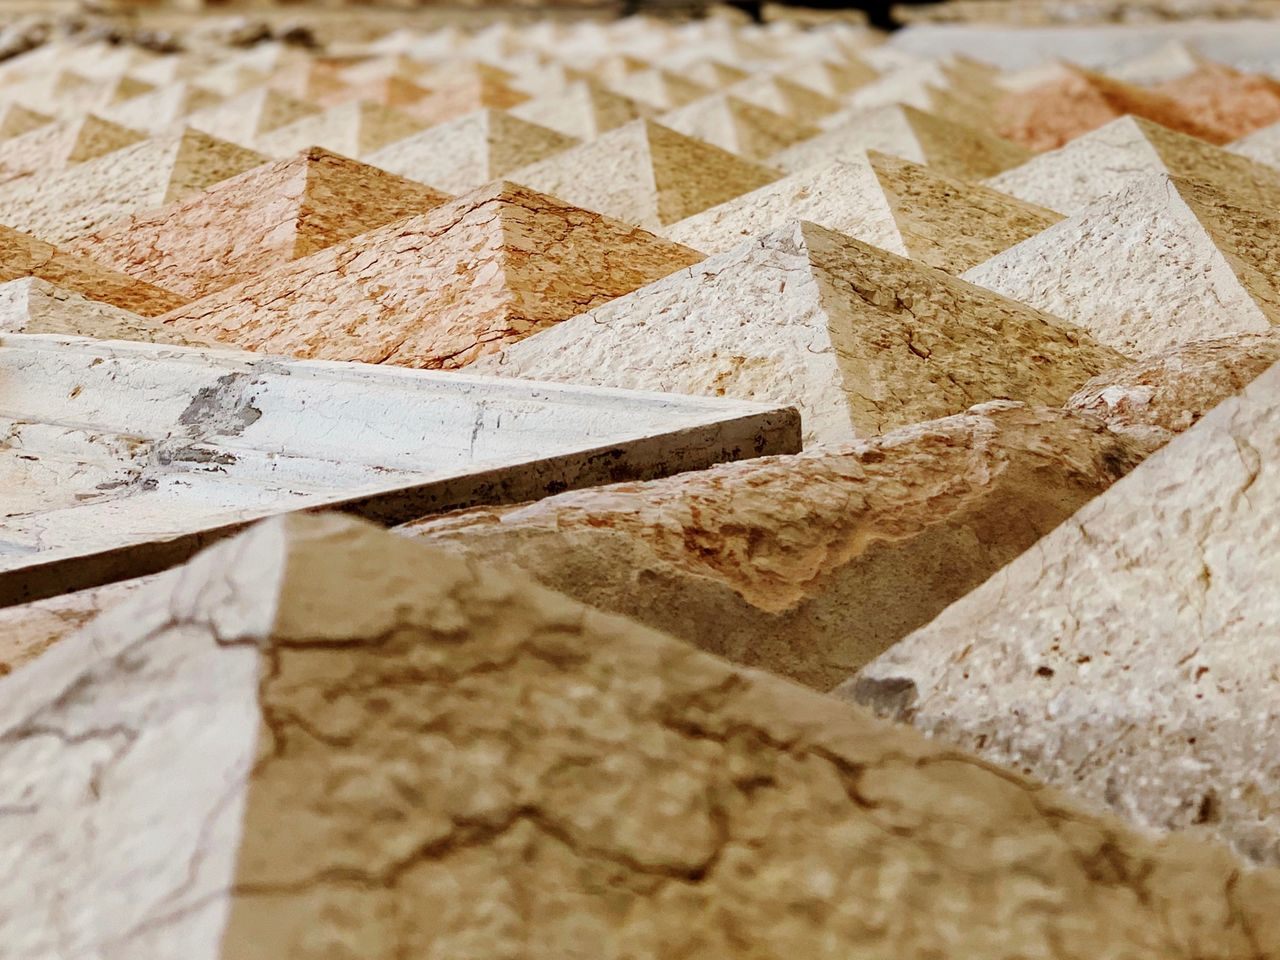 no people, close-up, selective focus, indoors, wall - building feature, still life, textured, full frame, paper, day, food and drink, pattern, food, backgrounds, architecture, stone material, marble, wall, concrete